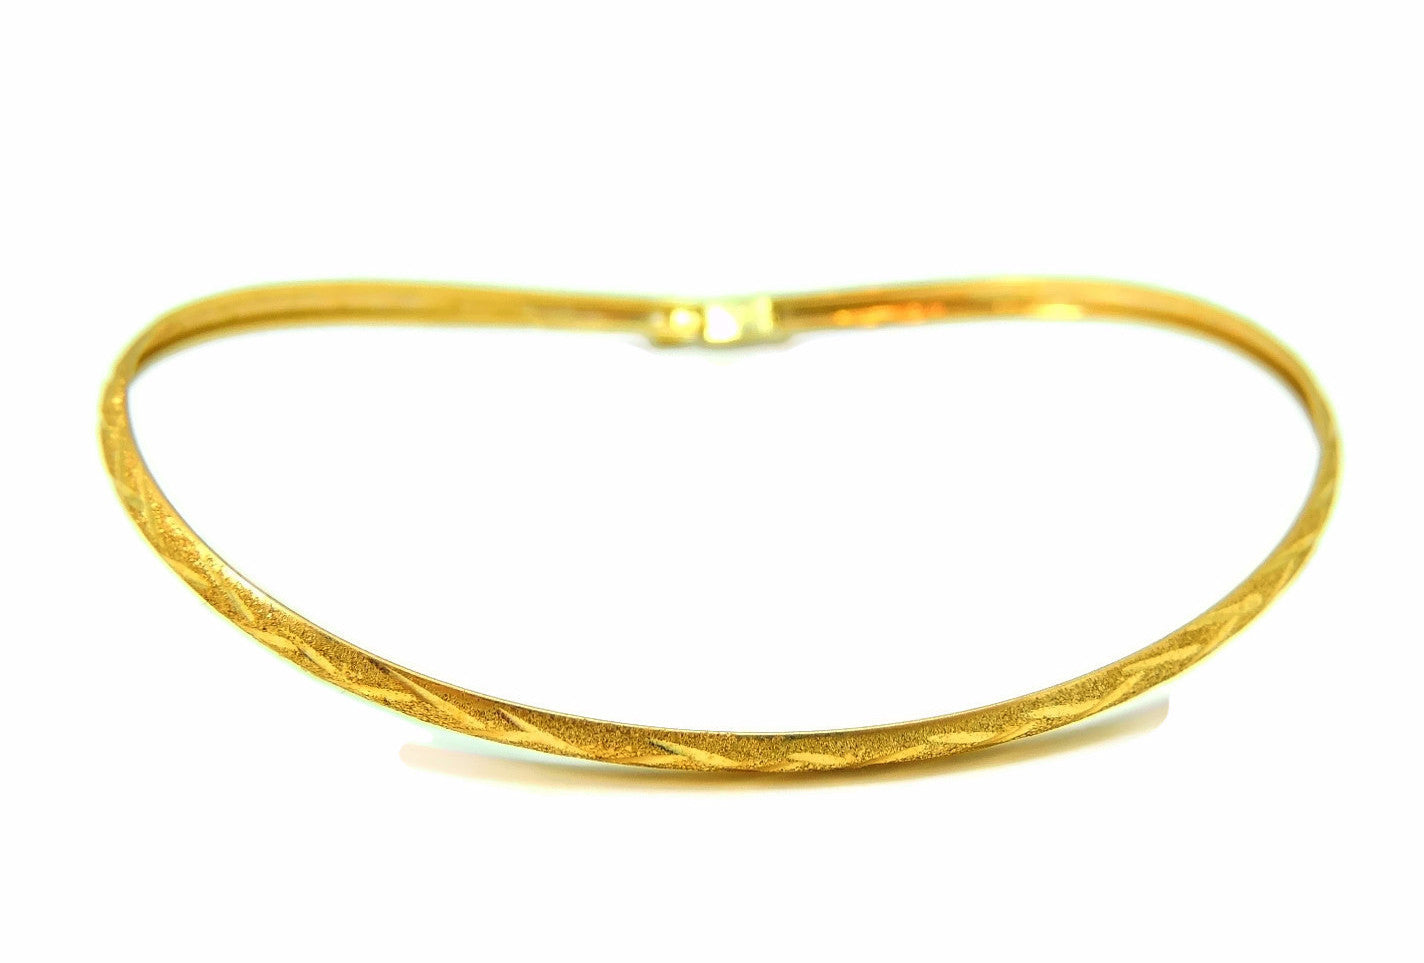 bangle hinge hinged bangles jewelry eternity bracelet twisted gold in